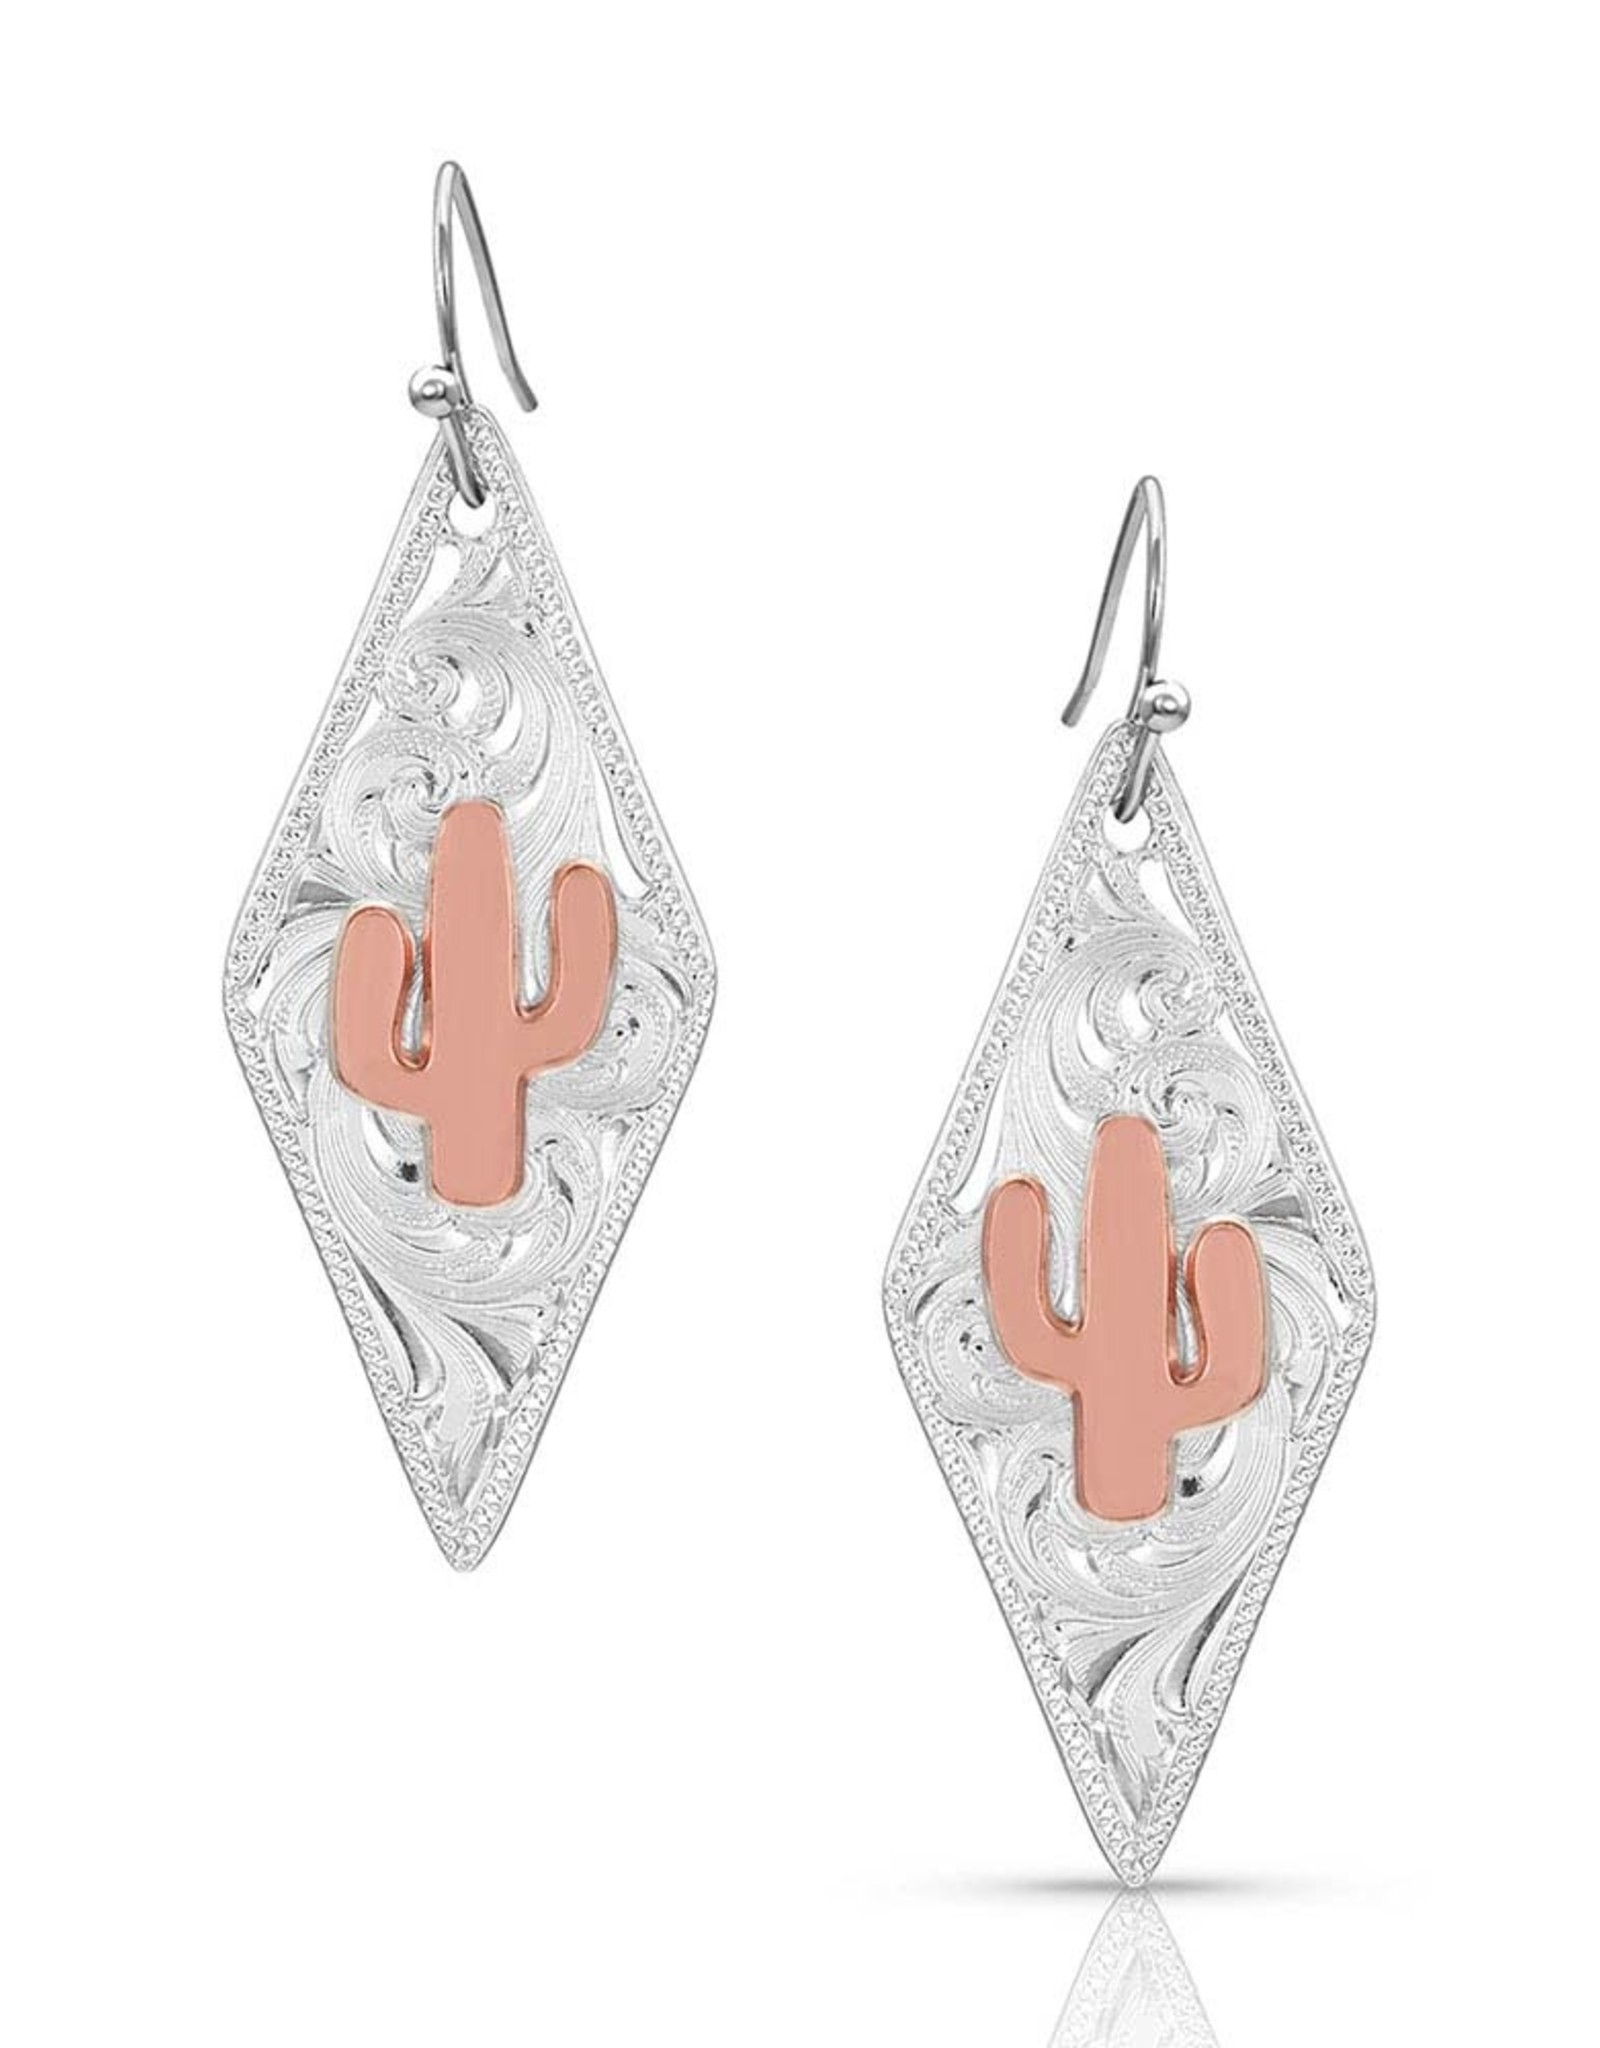 Montana Silver Filigree Rose Gold Cactus Earrings